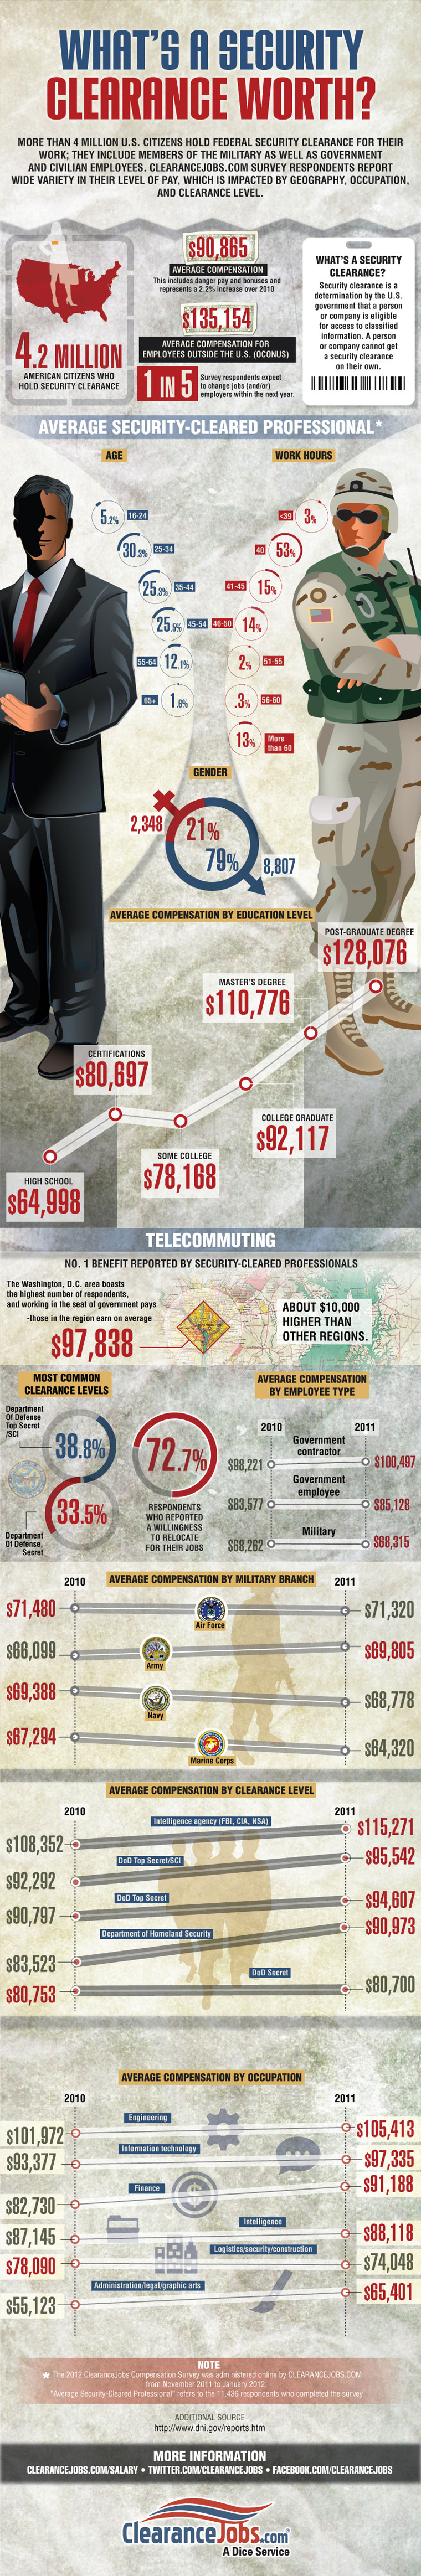 ClearanceJobs_Whats_Security_Clearance_Worth_Infographic.jpg